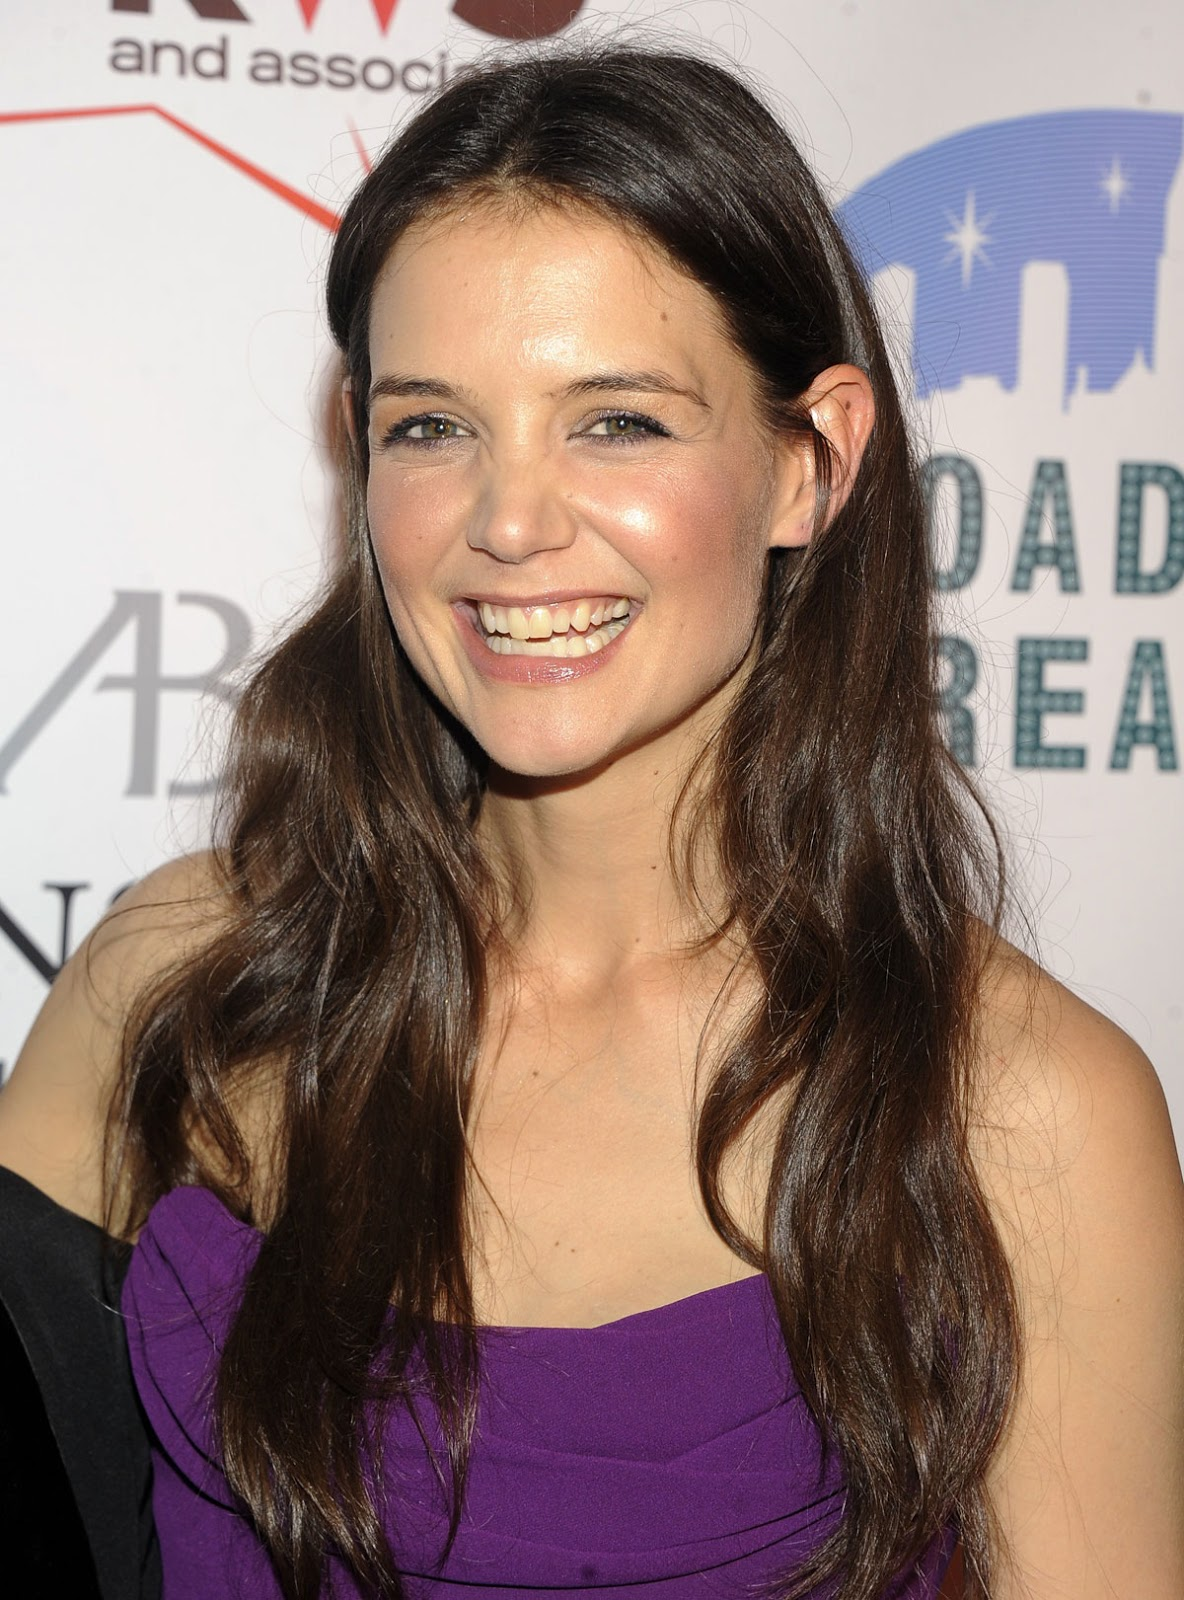 http://3.bp.blogspot.com/-HC24zZBNUCQ/UOCrsnX_k-I/AAAAAAAANWQ/3qrQJUBudVU/s1600/KATIE-HOLMES-at-The-Broadway-Dreams-Foundations-Gala-in-New-York-2.jpg